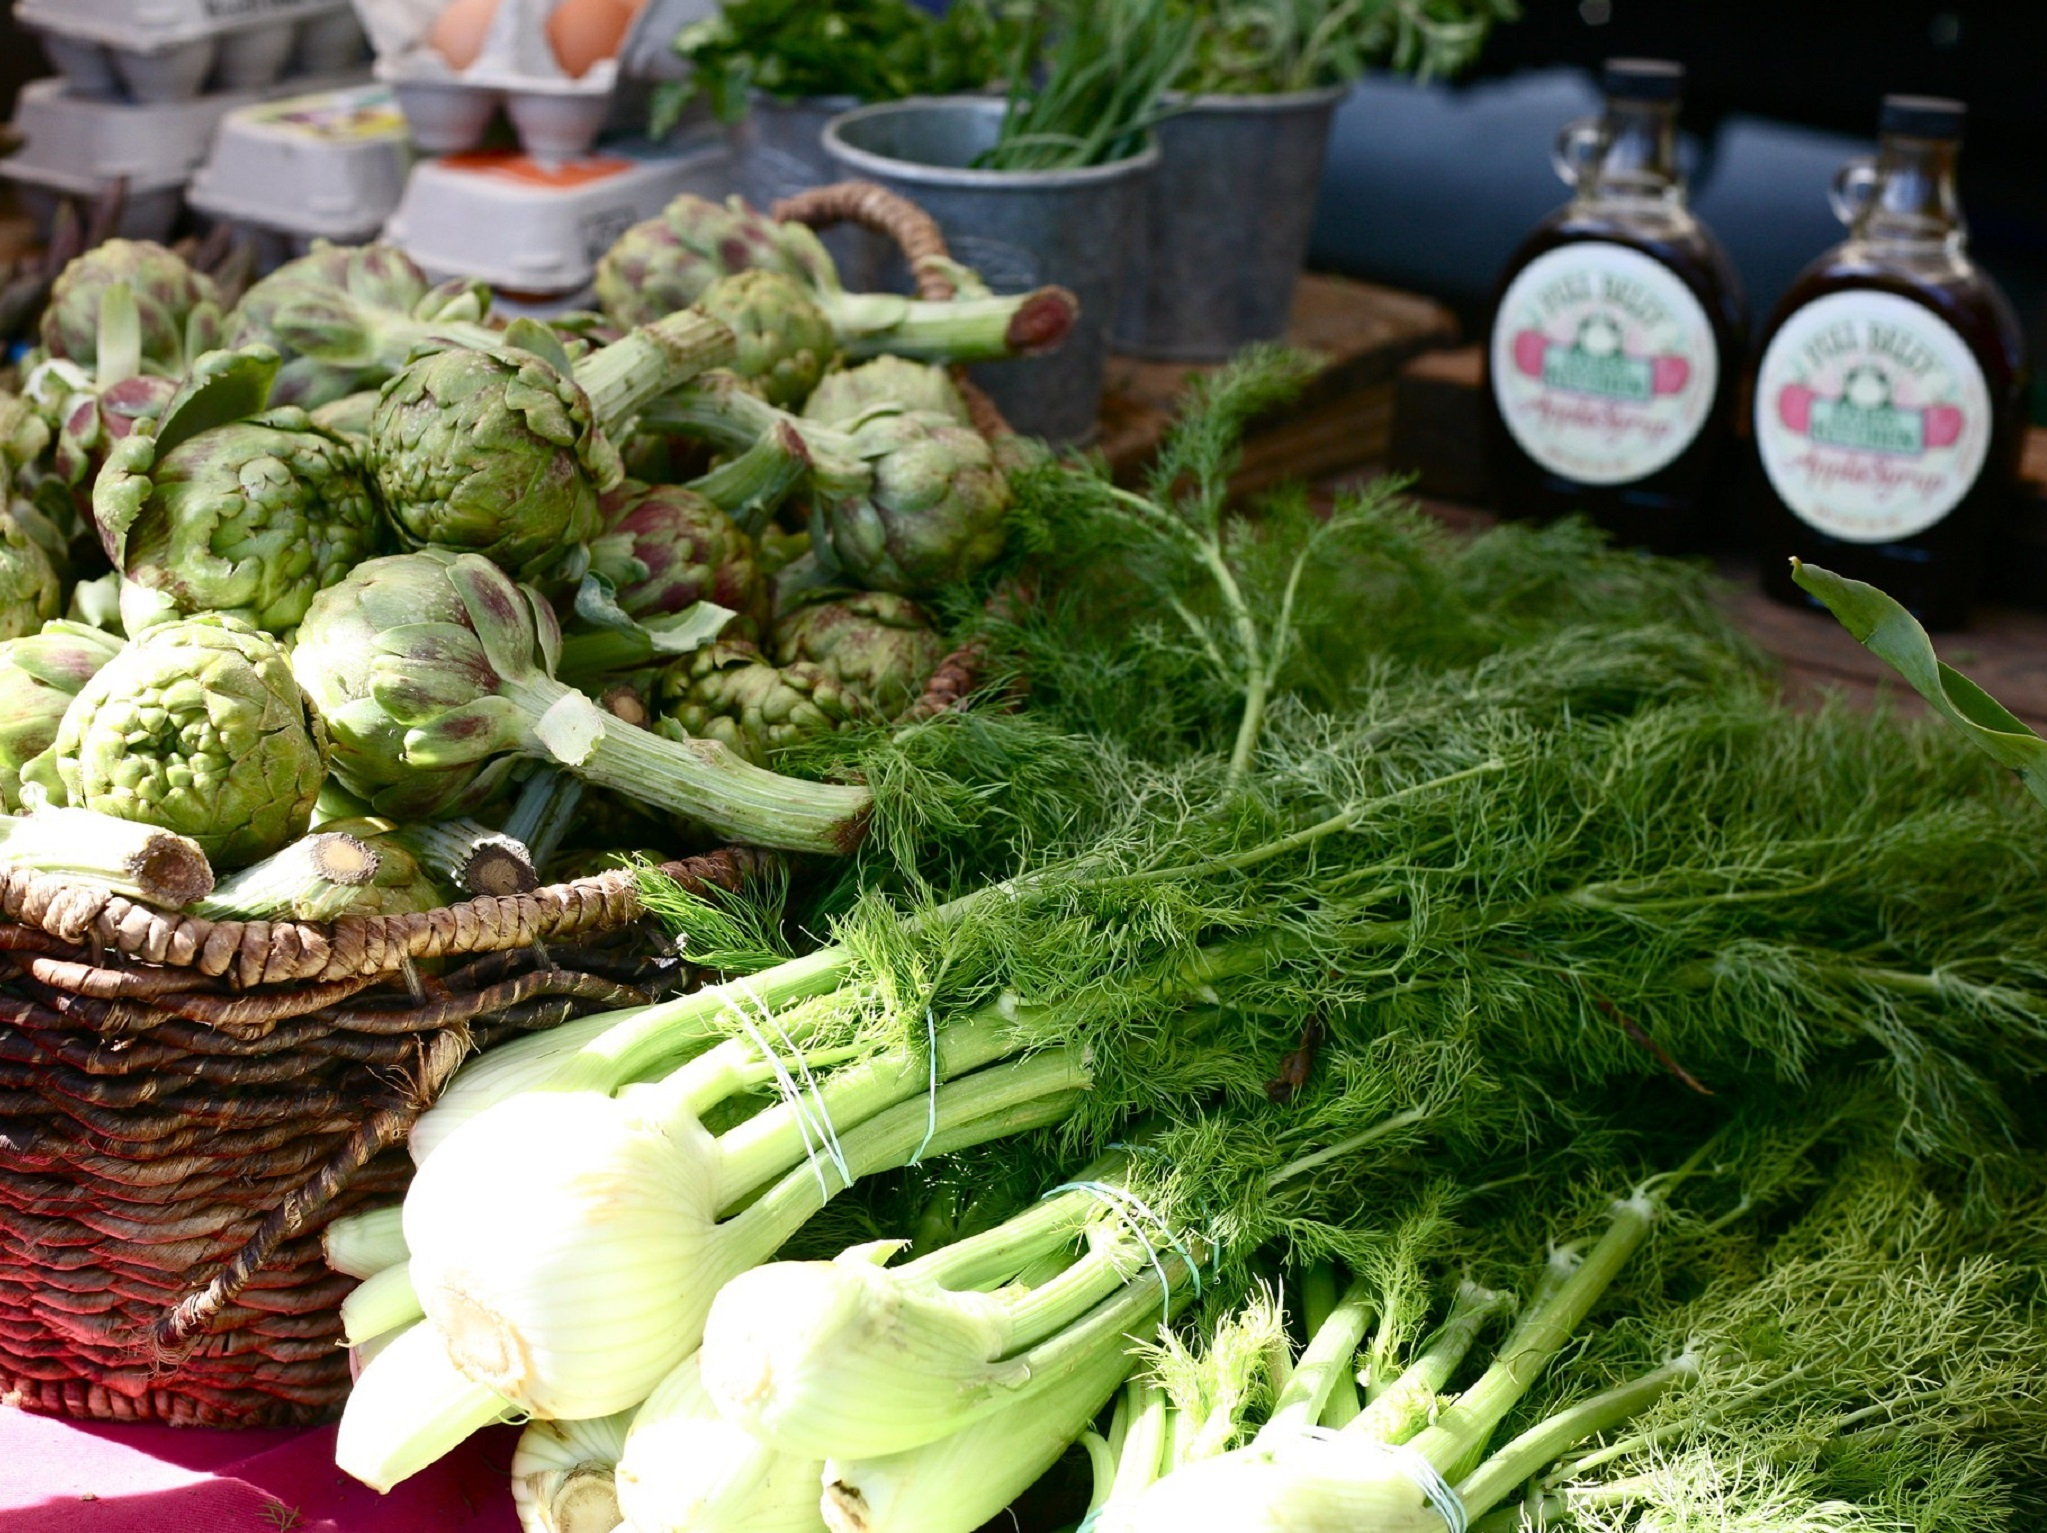 Fennel and artichokes on a farmers market table